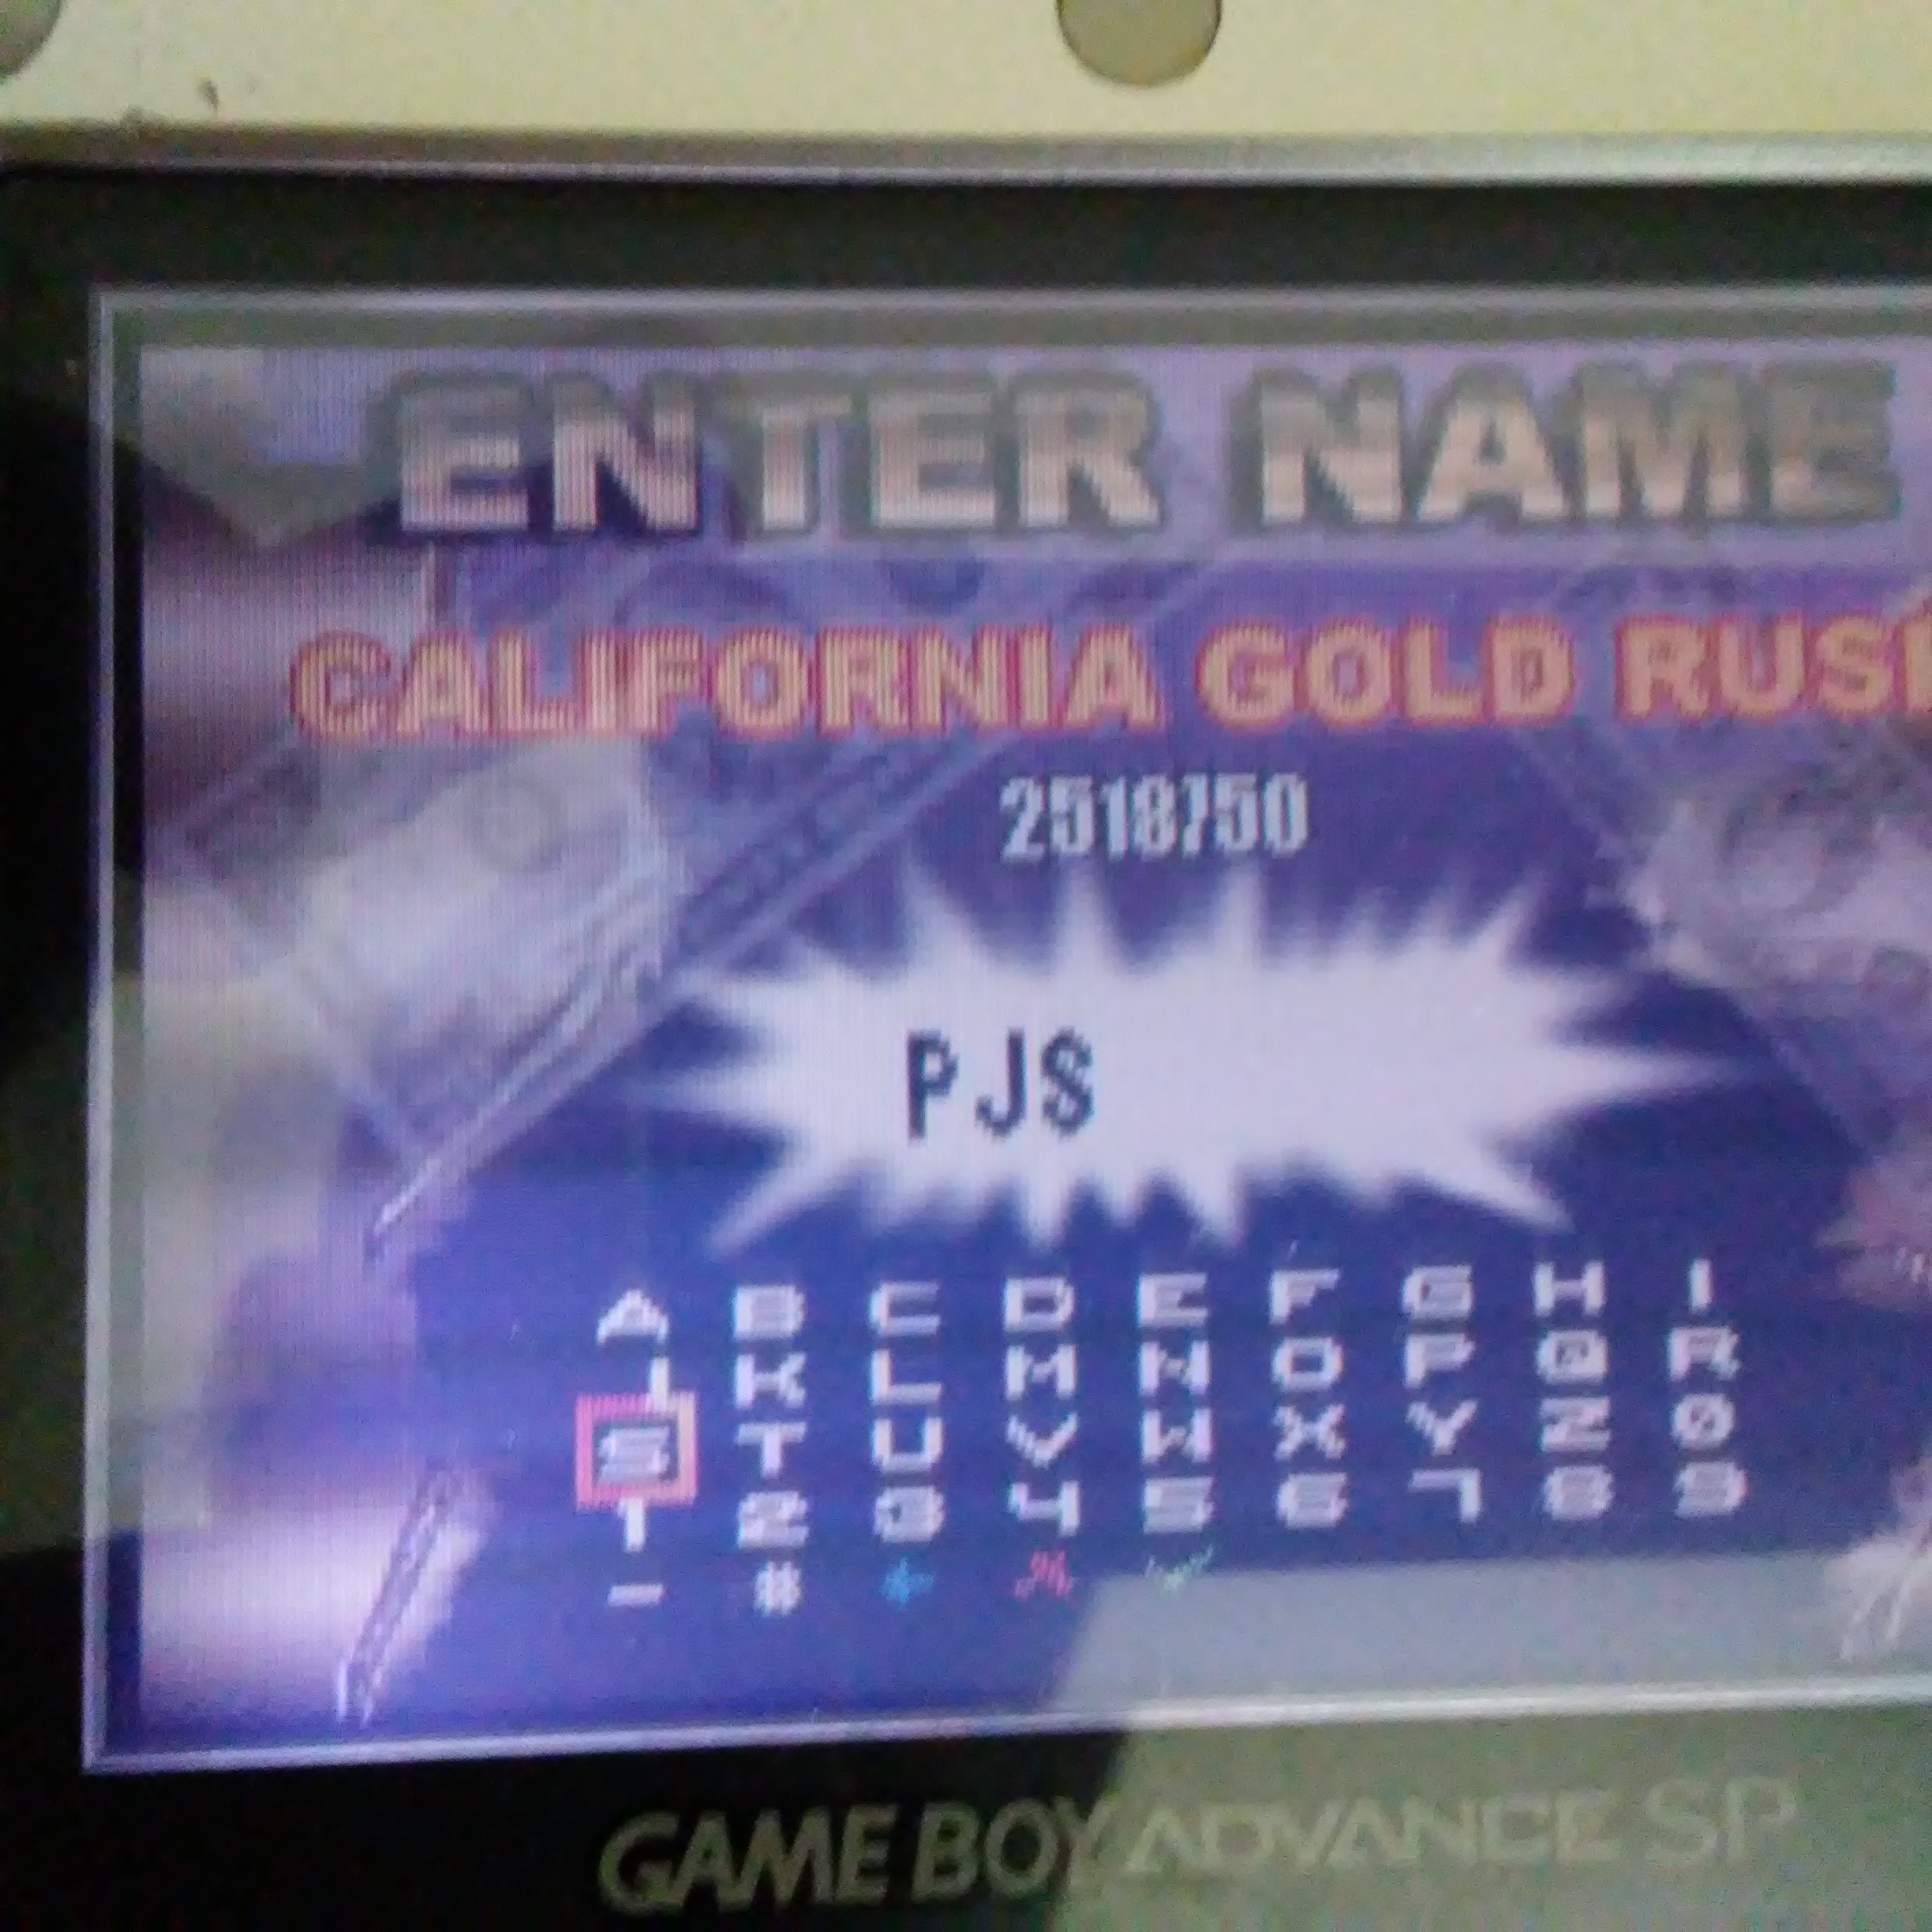 Pjsteele: Pinball Tycoon: California Gold Rush (GBA) 2,518,750 points on 2017-06-21 12:33:37